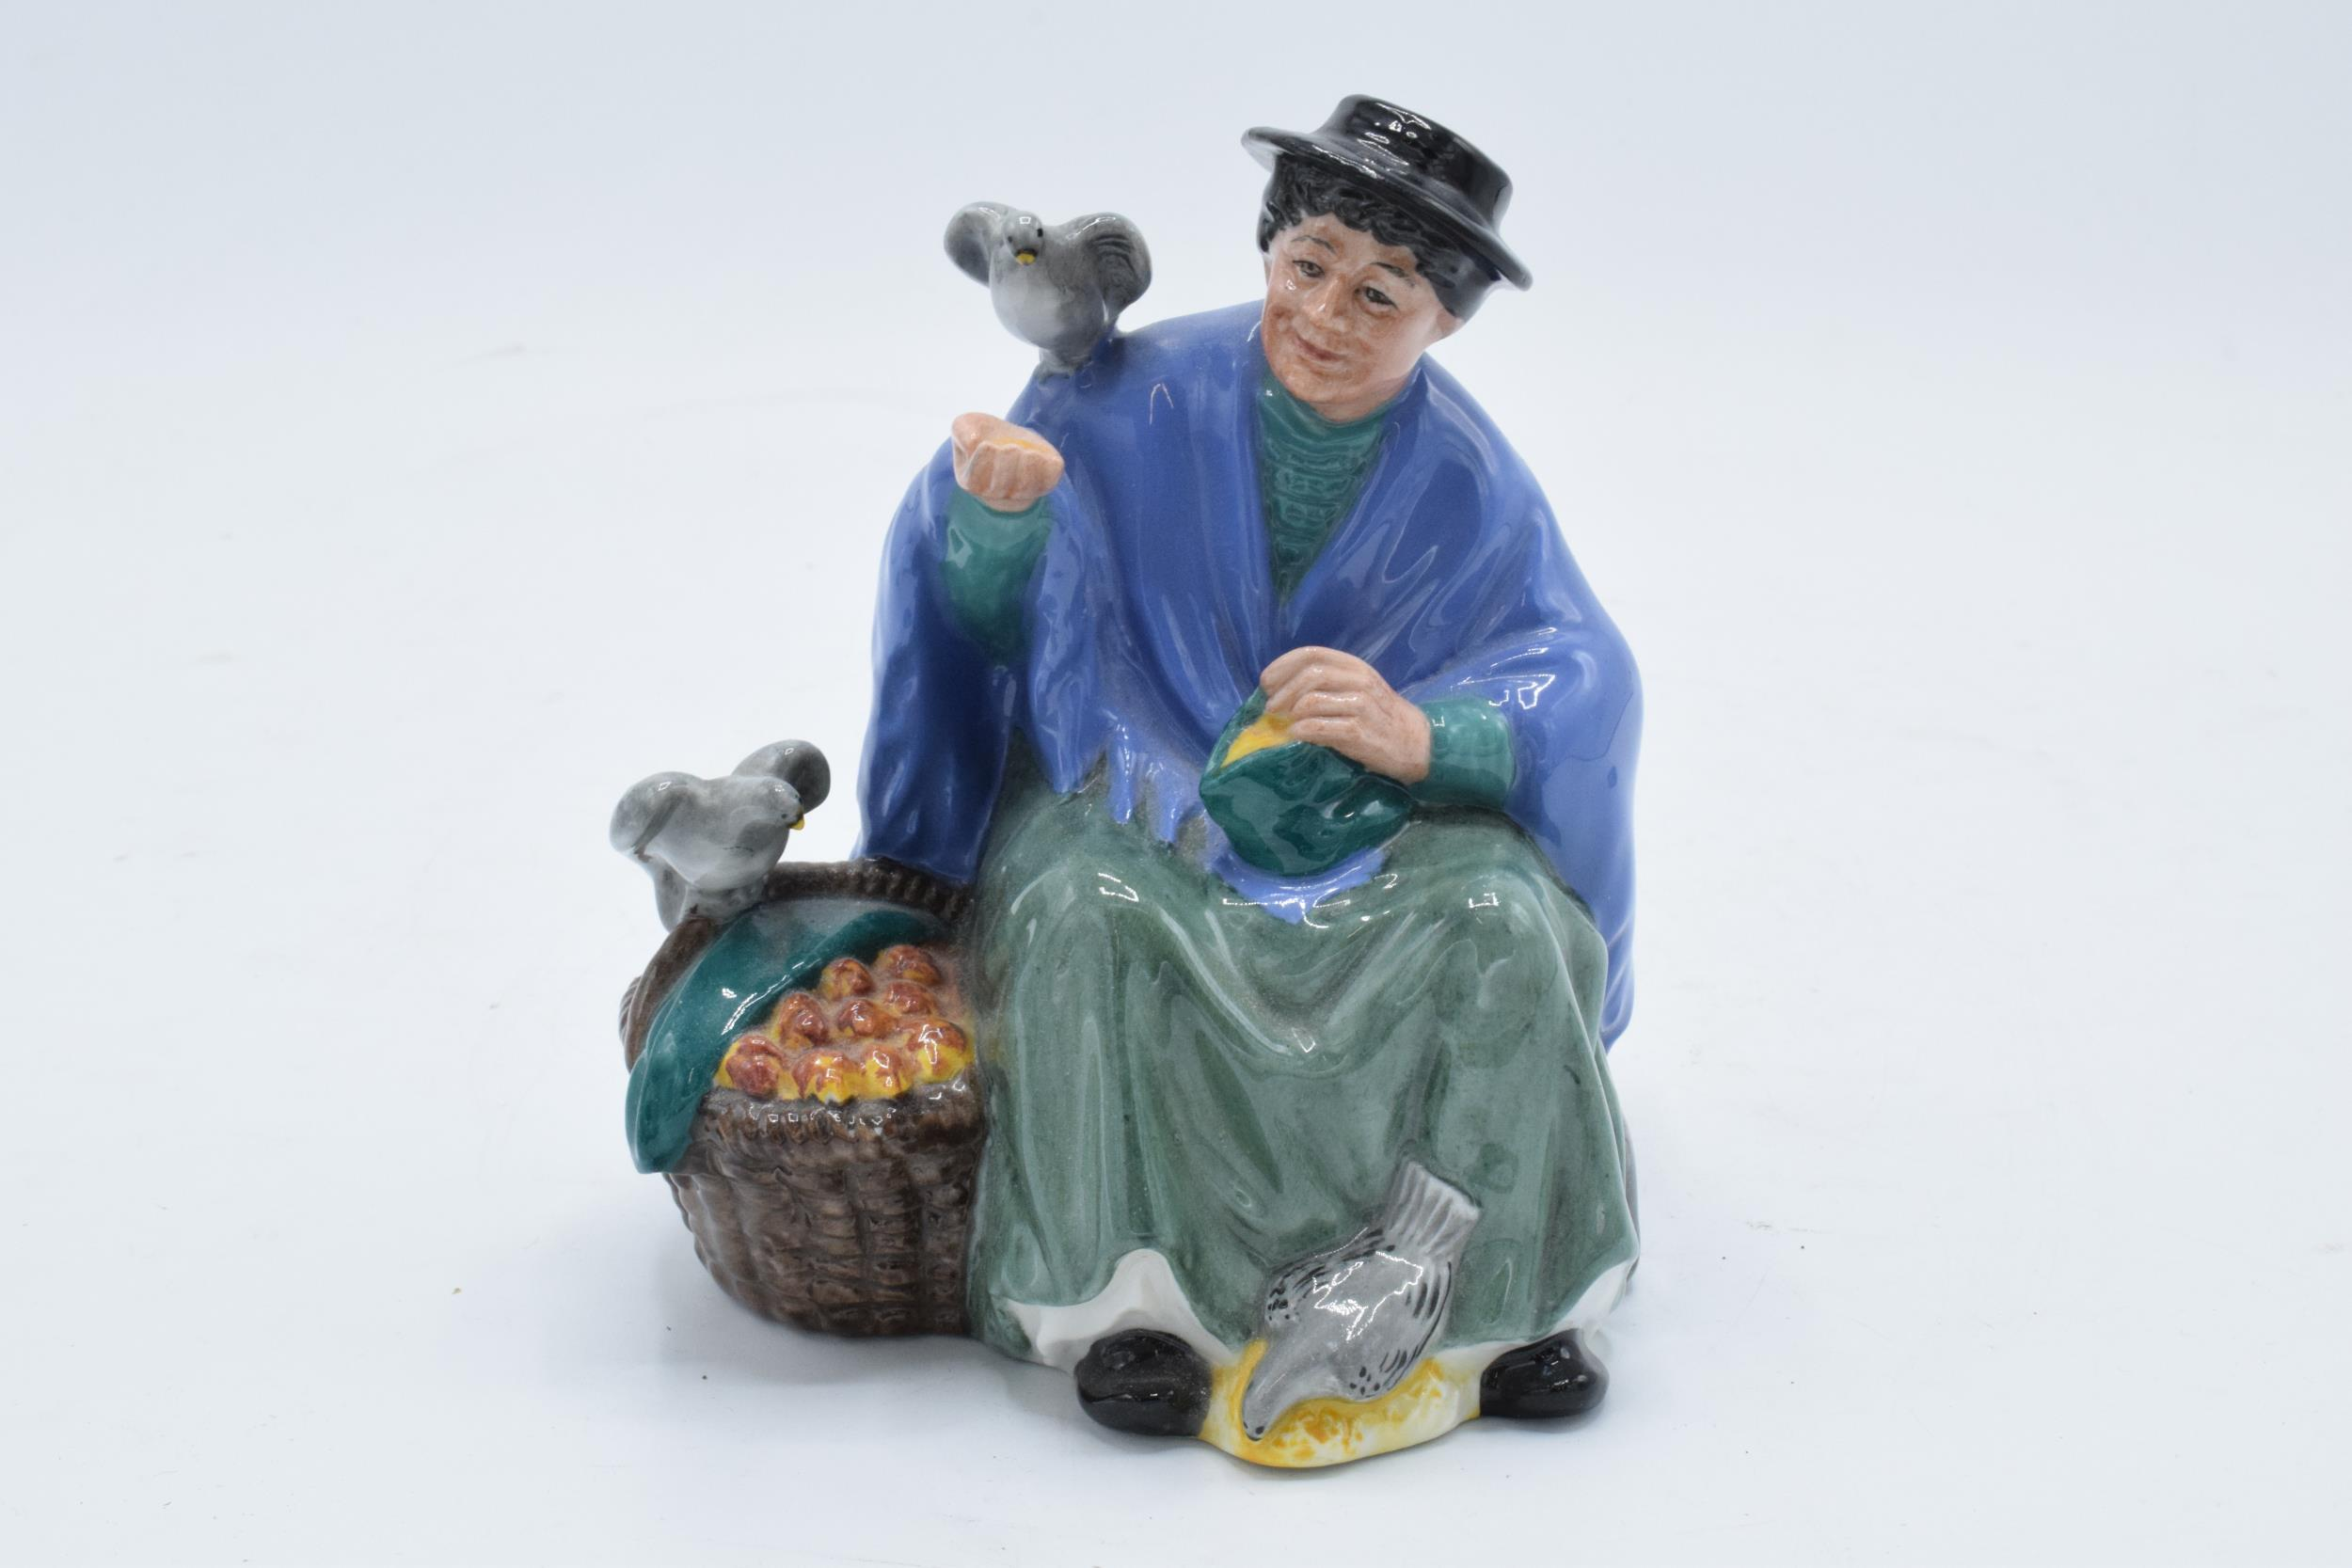 Royal Doulton figure Tuppence a Bag HN2320. 14cm tall. In good condition with no obvious damage or